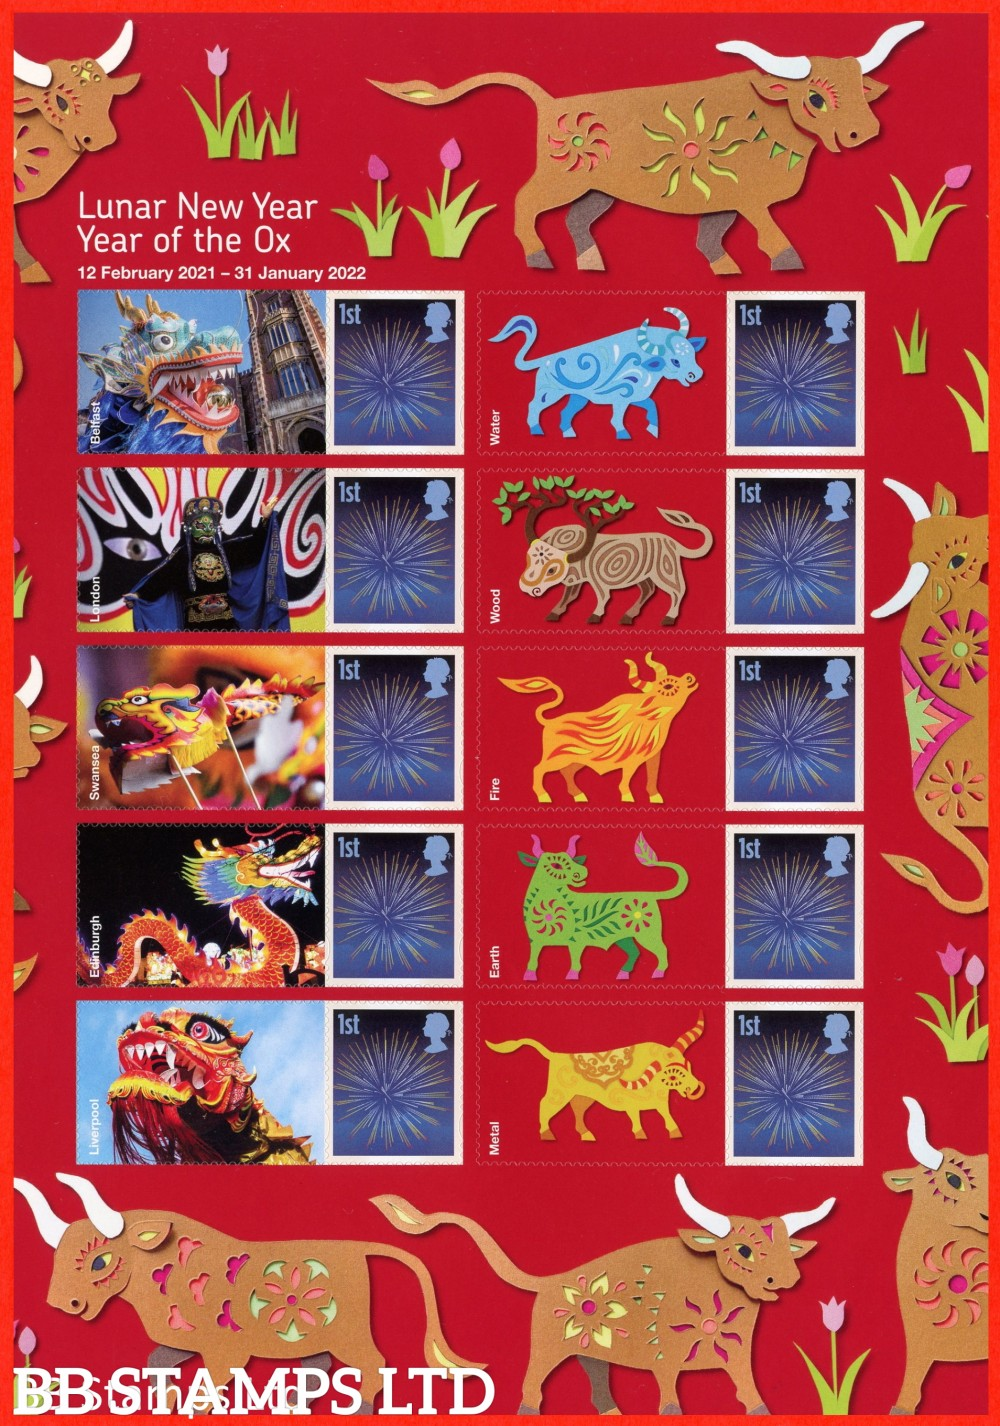 Lunar New Year of the Ox half sheet of 10 with labels. Half supplied may vary from the one shown. Stamps as self adhesive  Printed in Litho. For Complete Sheet, see Smilers Sheets 08.12.20